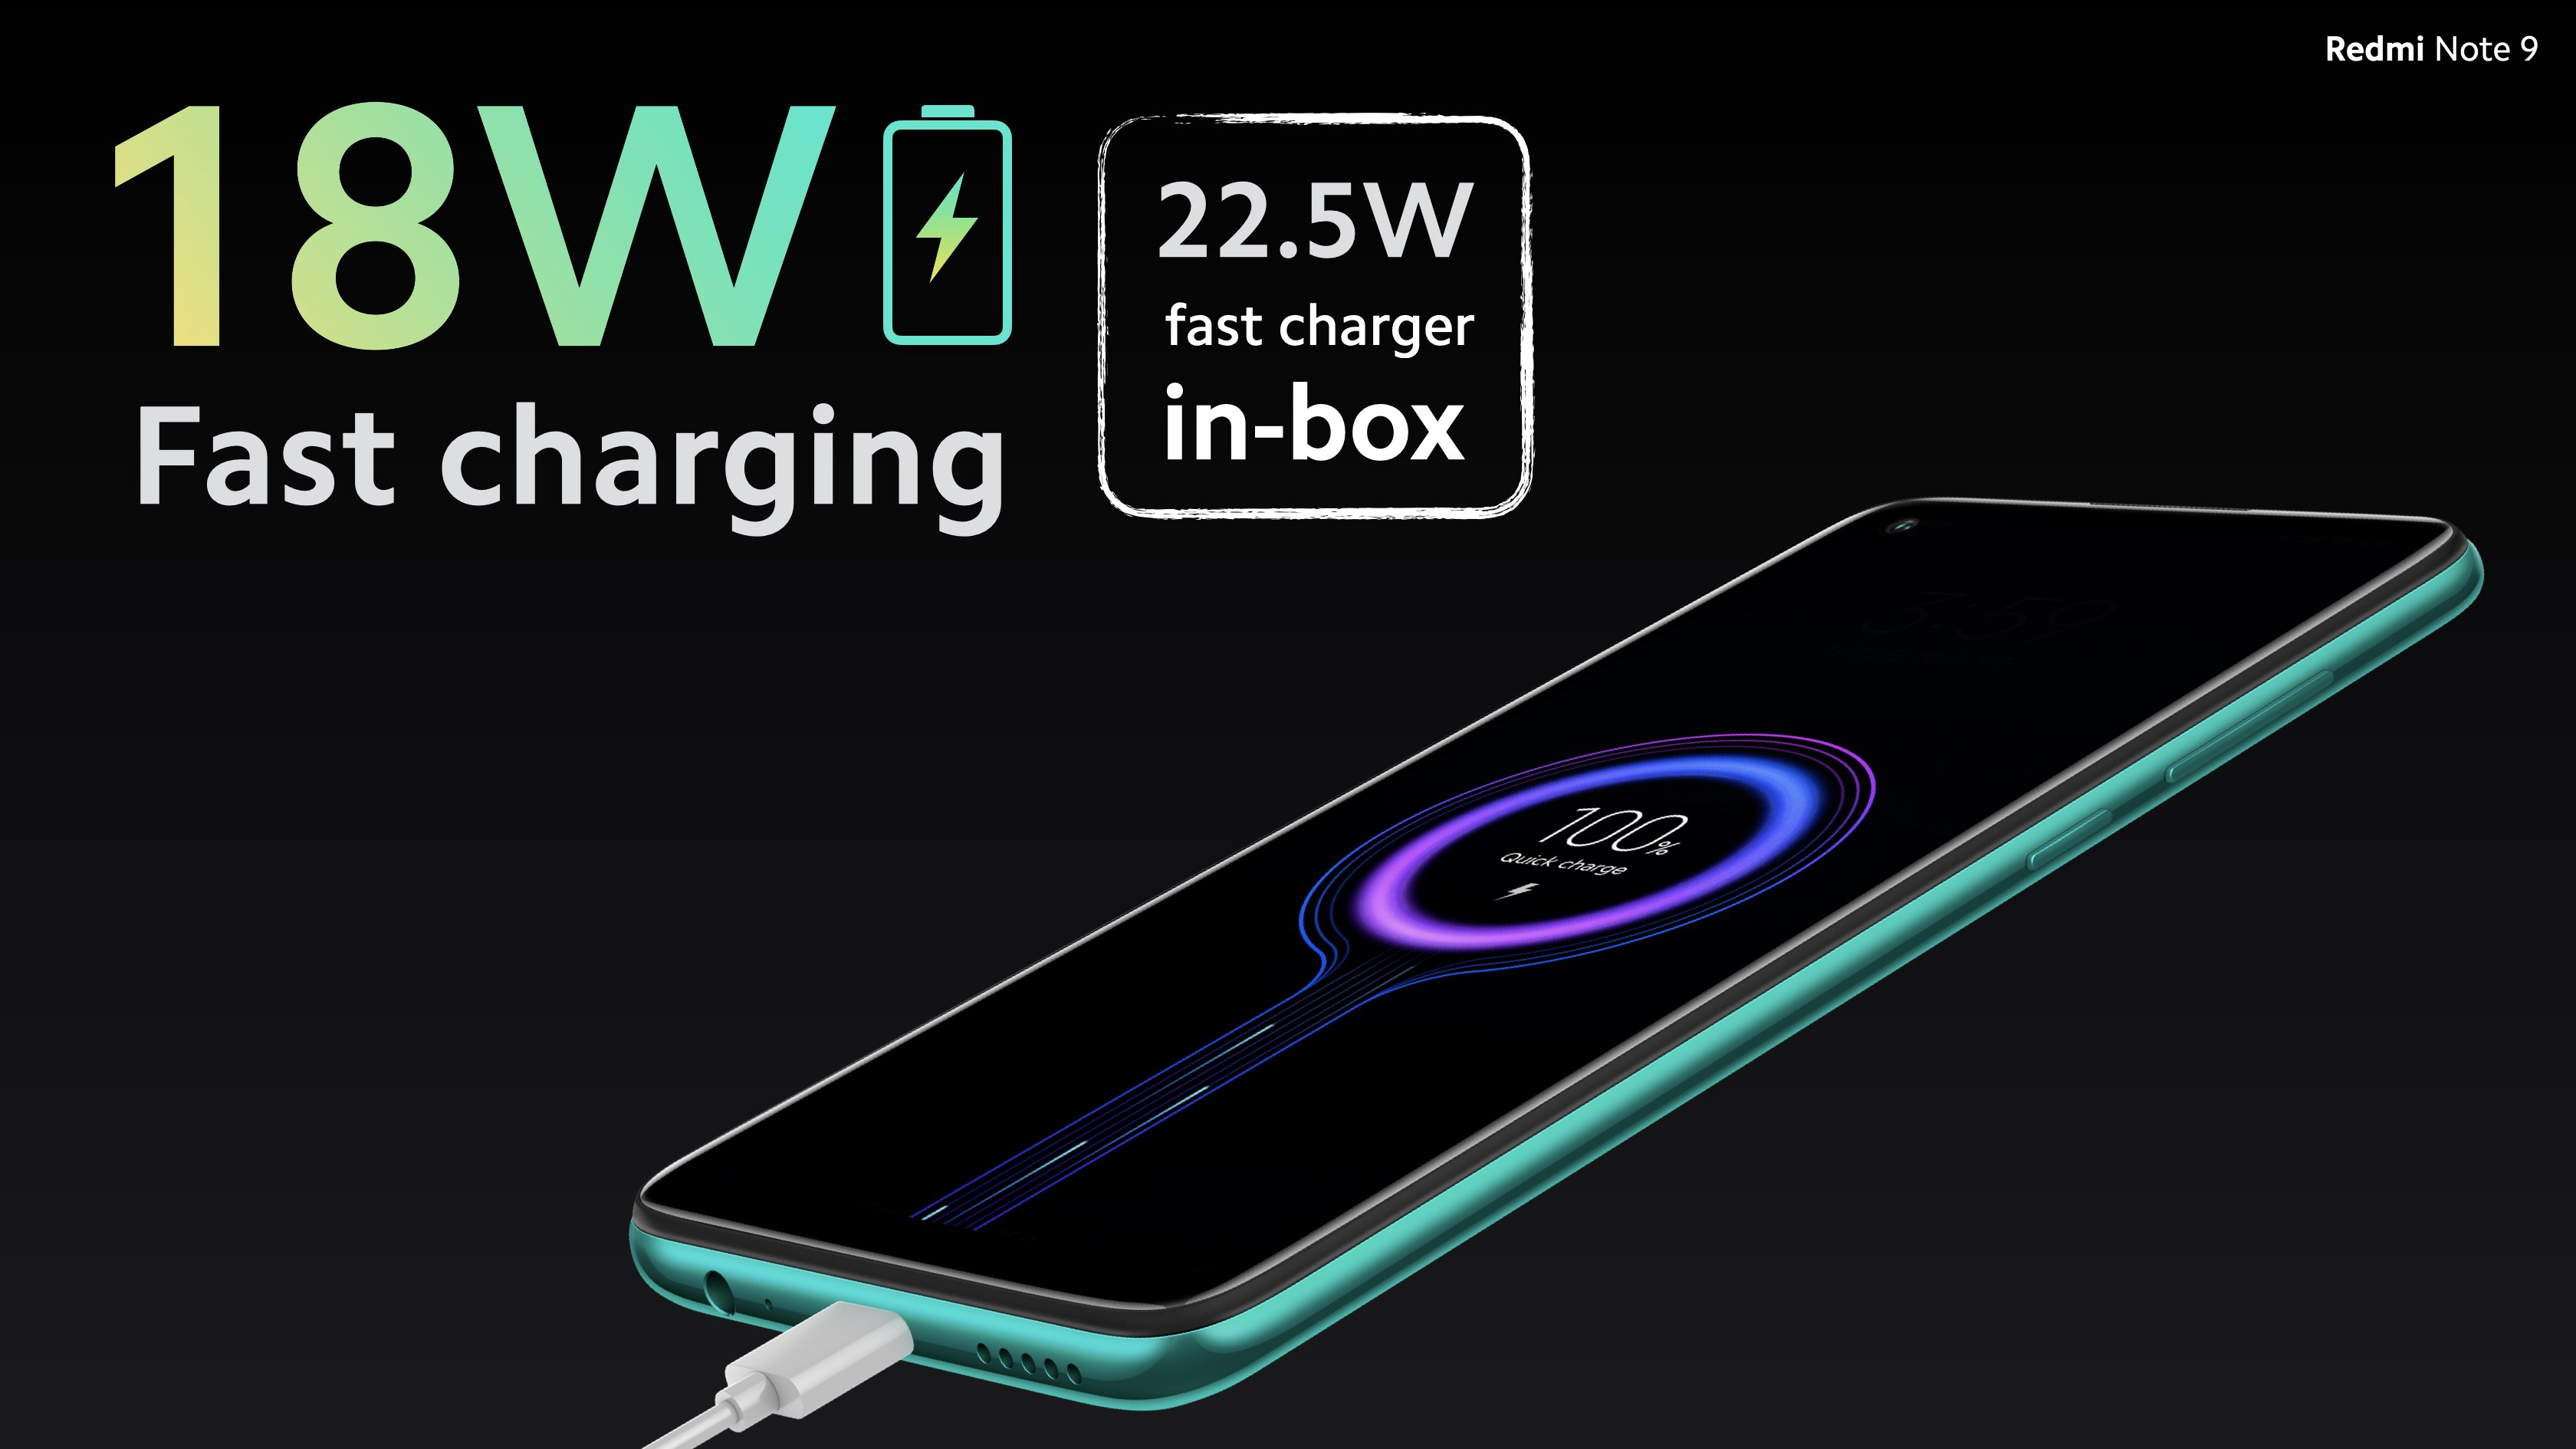 Note 9 equipped with 5020mAh (typ)* Built-In Non-removable Lithium Ion Polymer Battery Supports 18W fast charge